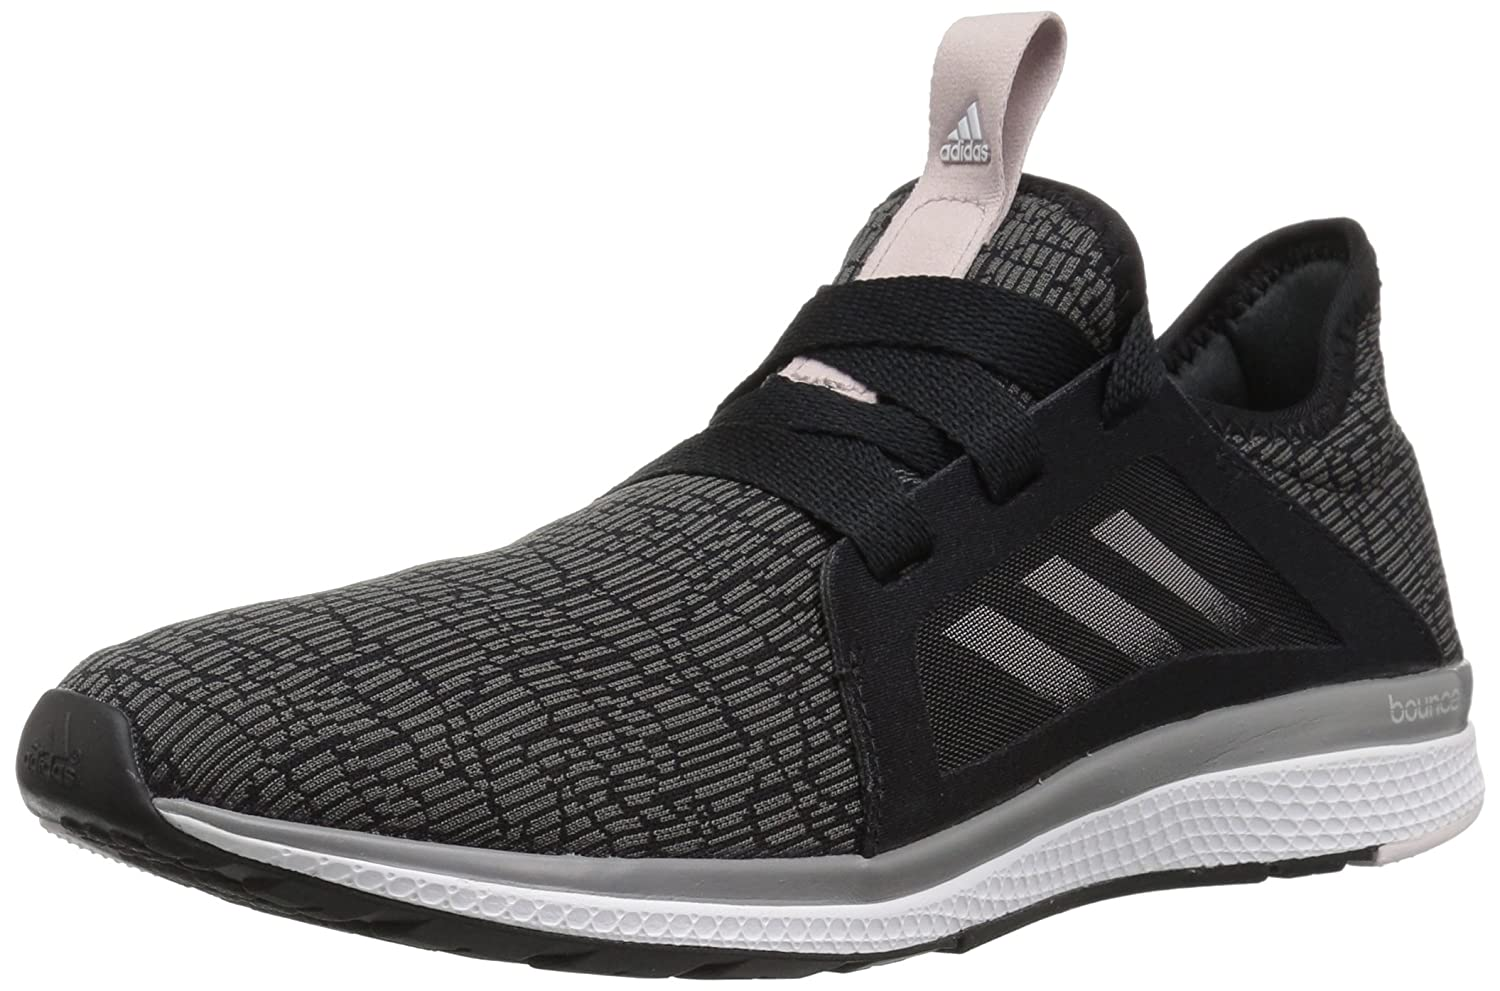 sports shoes c93d7 8498e Amazon.com  adidas Performance Womens Edge Lux w Running Shoe, Core Black,  Vapour Grey Met.Fabric, Orchid Tint s, 11 M US  Road Running